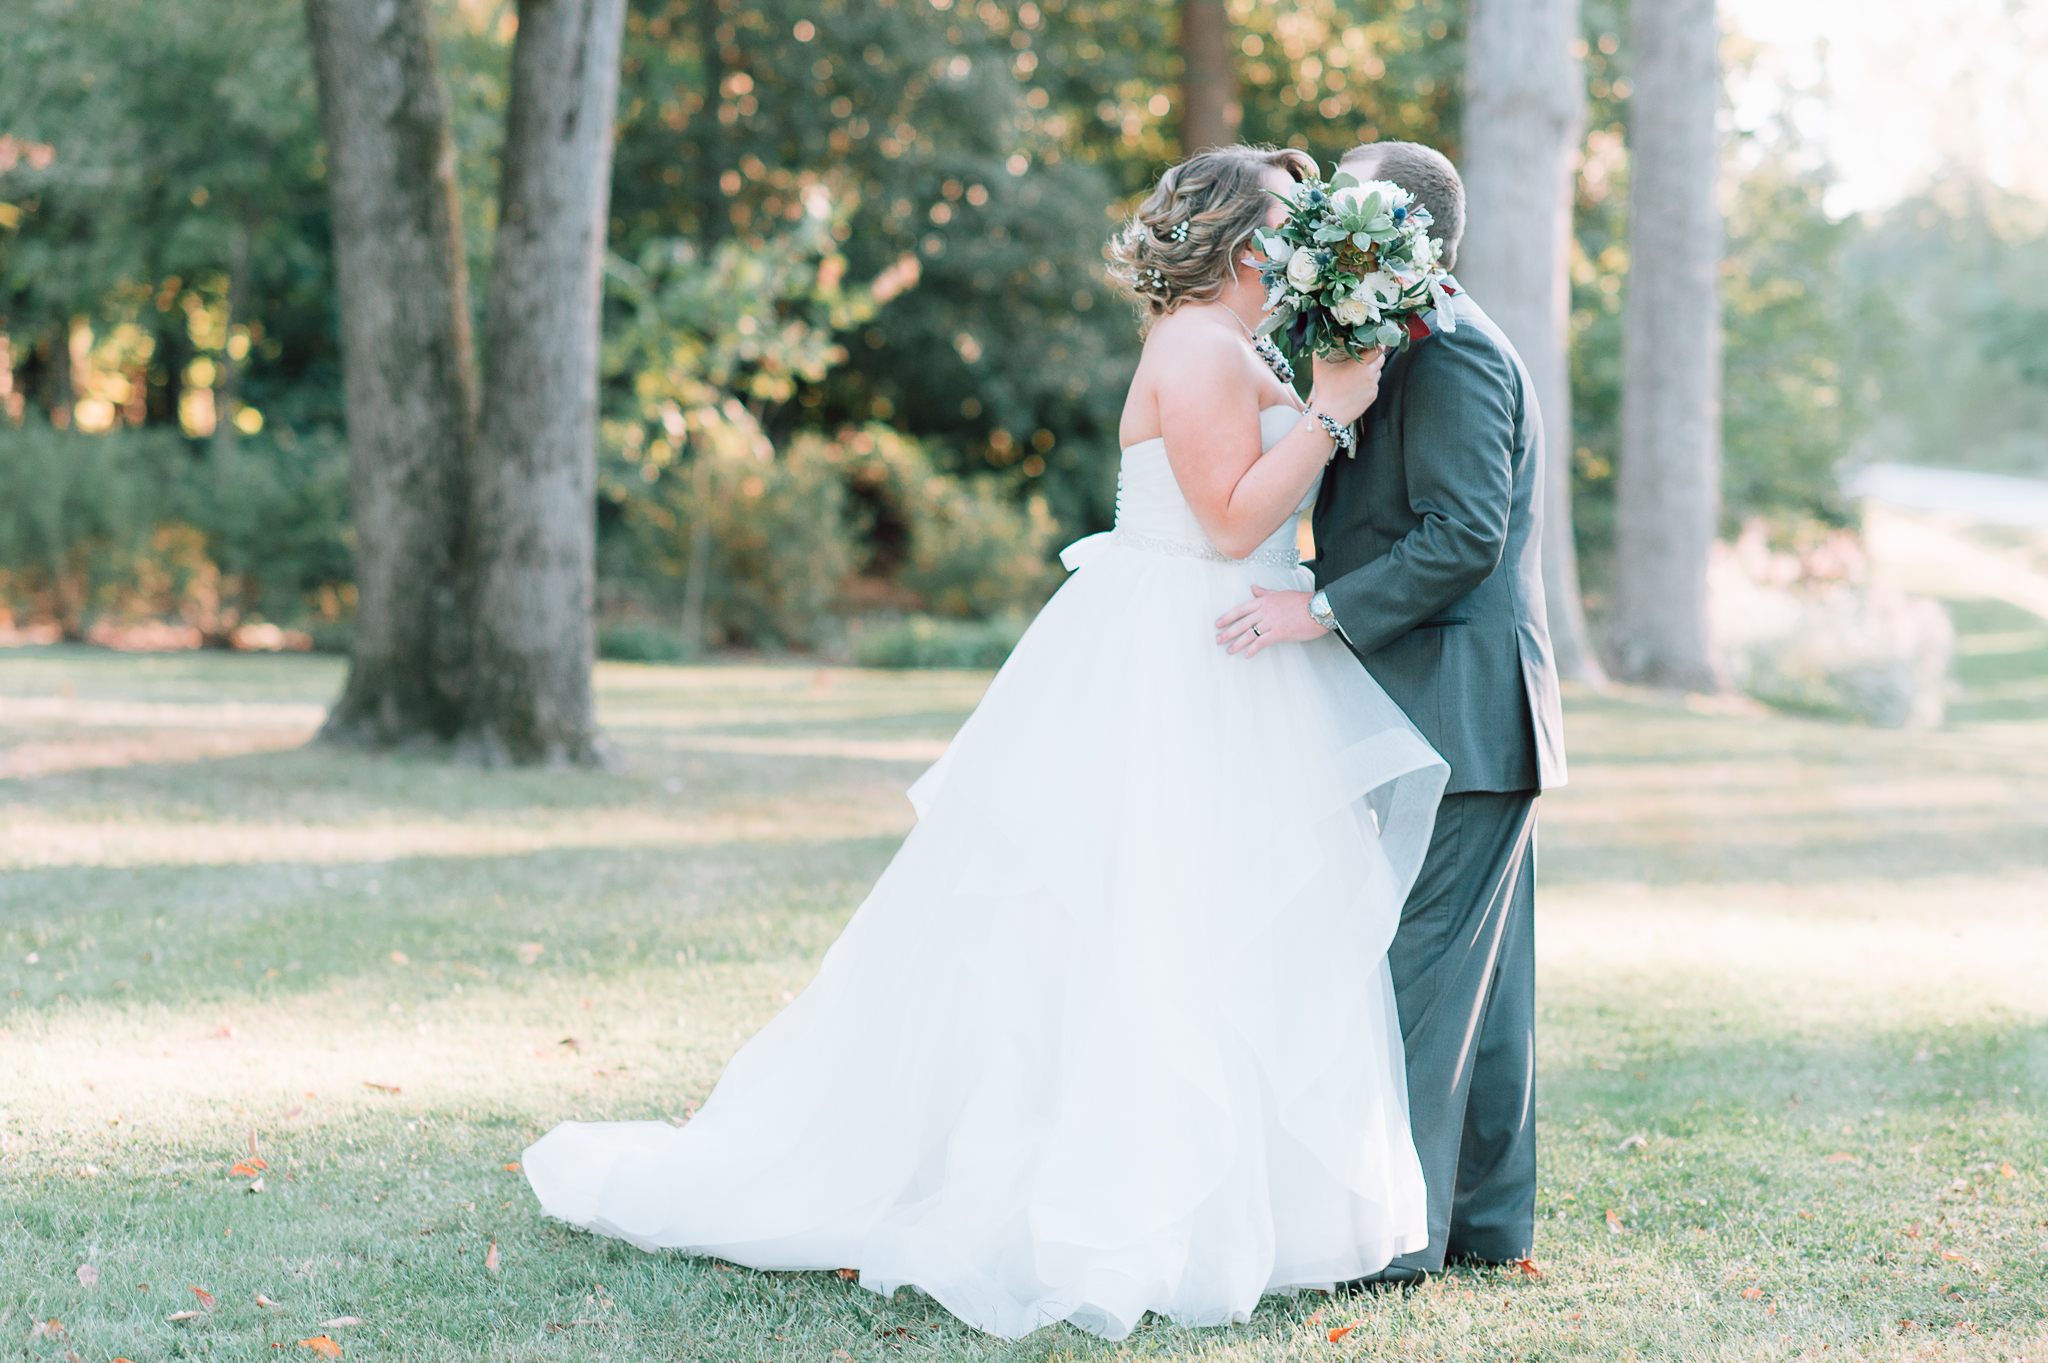 youseephotography_virginiawedding_fall_WallaceManor_EmilyCody (92).jpg